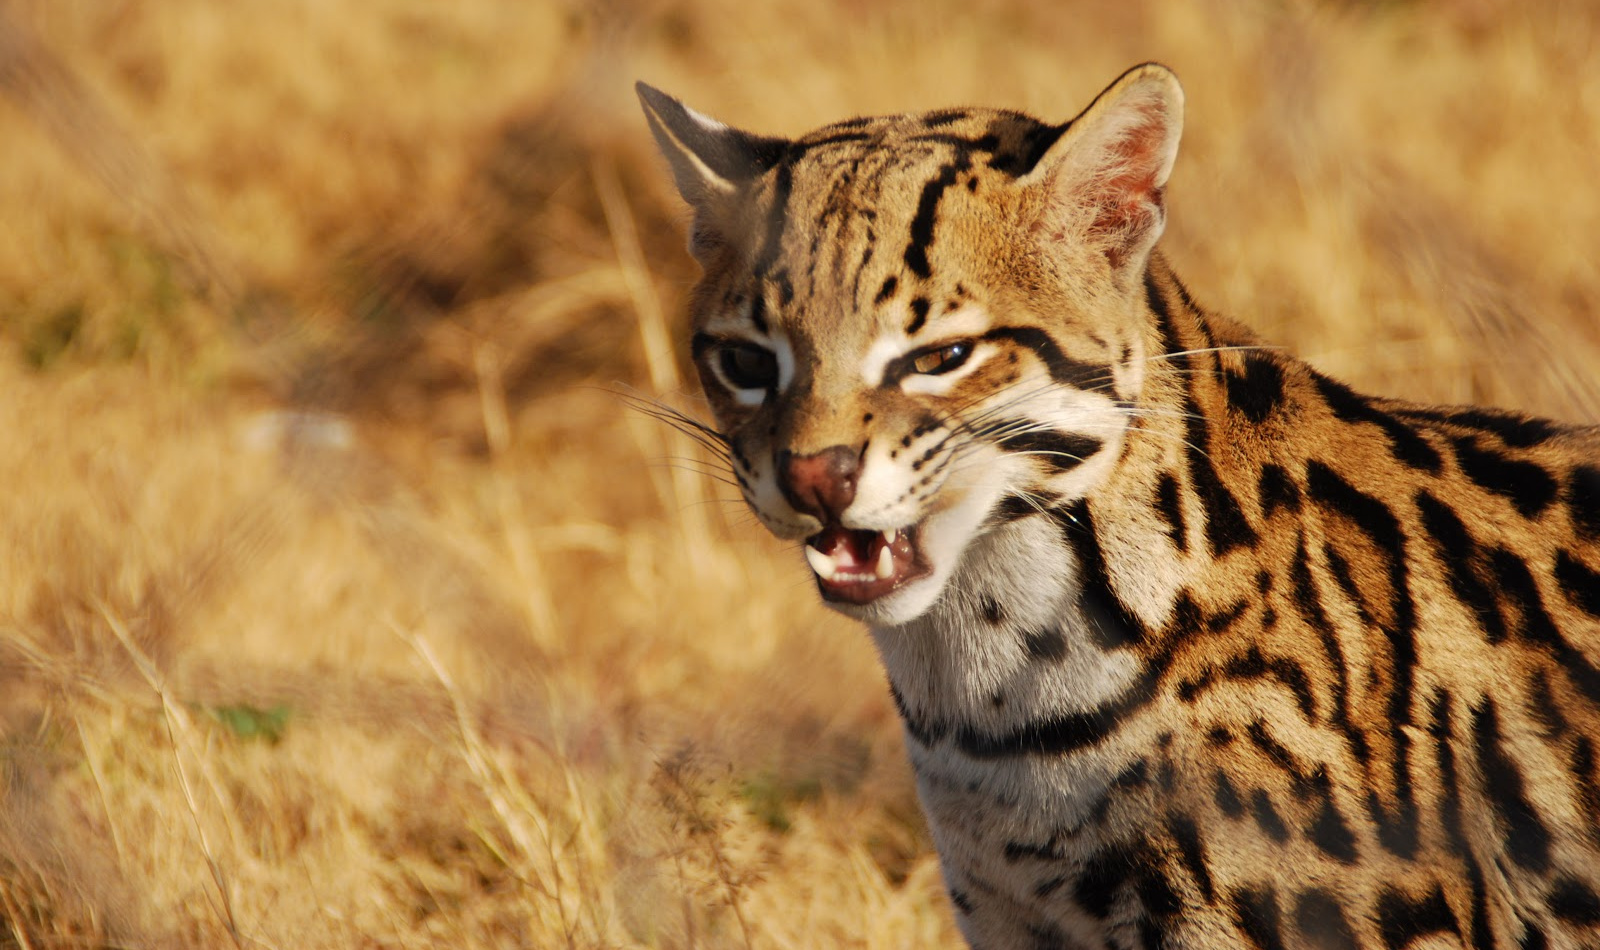 Looking for some of the best Serval cat videos on YouTube? How about some information about the Savannah? If so, check these 5 out!